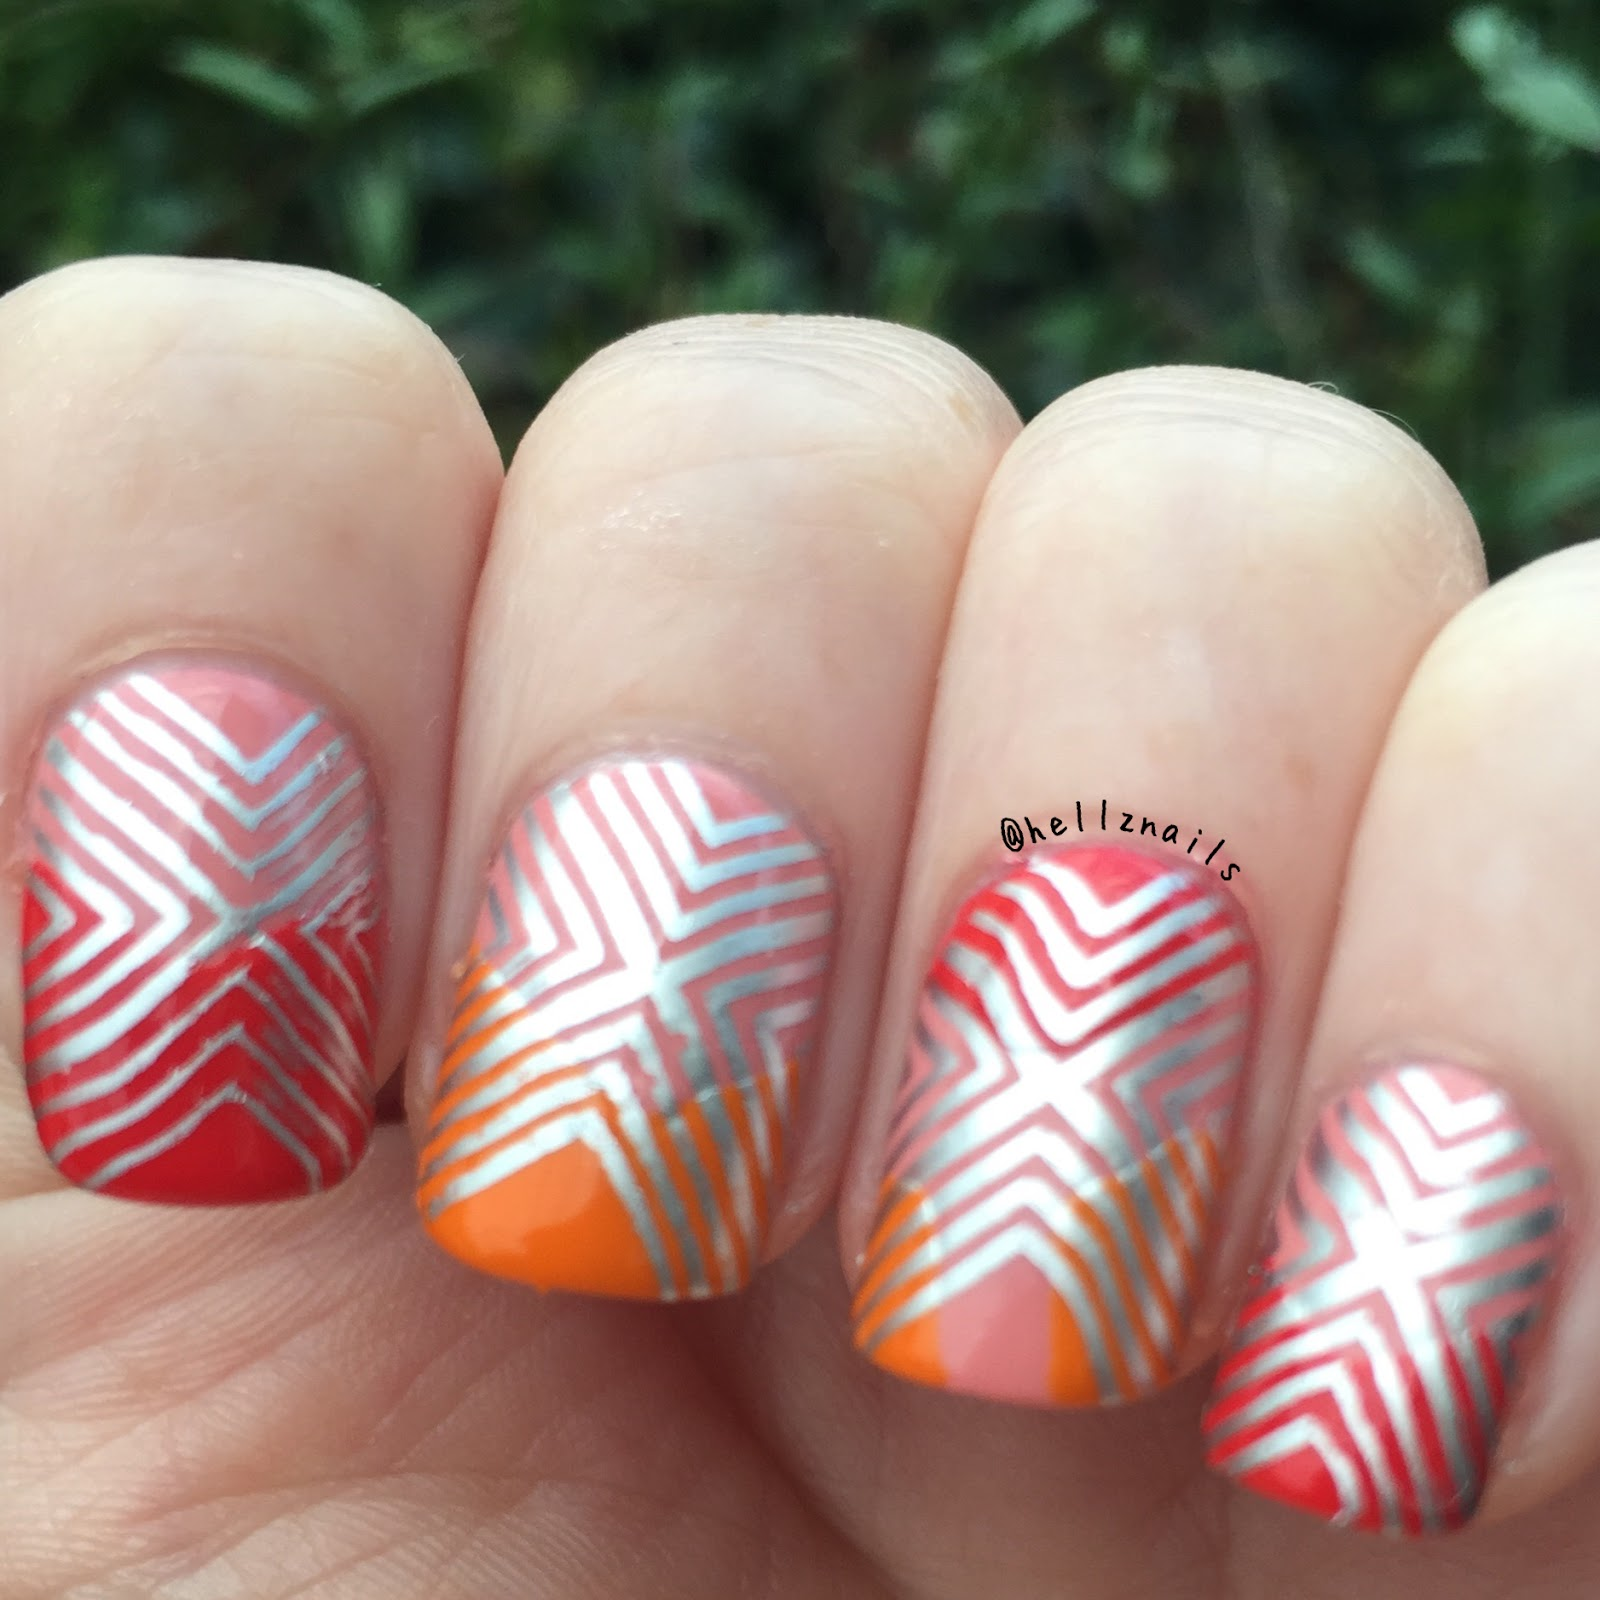 Geometric nail art 31 day nail challenge day 16 hellz nails geometric nail art 31 day nail challenge itsy bohemian gypsy no fear prinsesfo Images